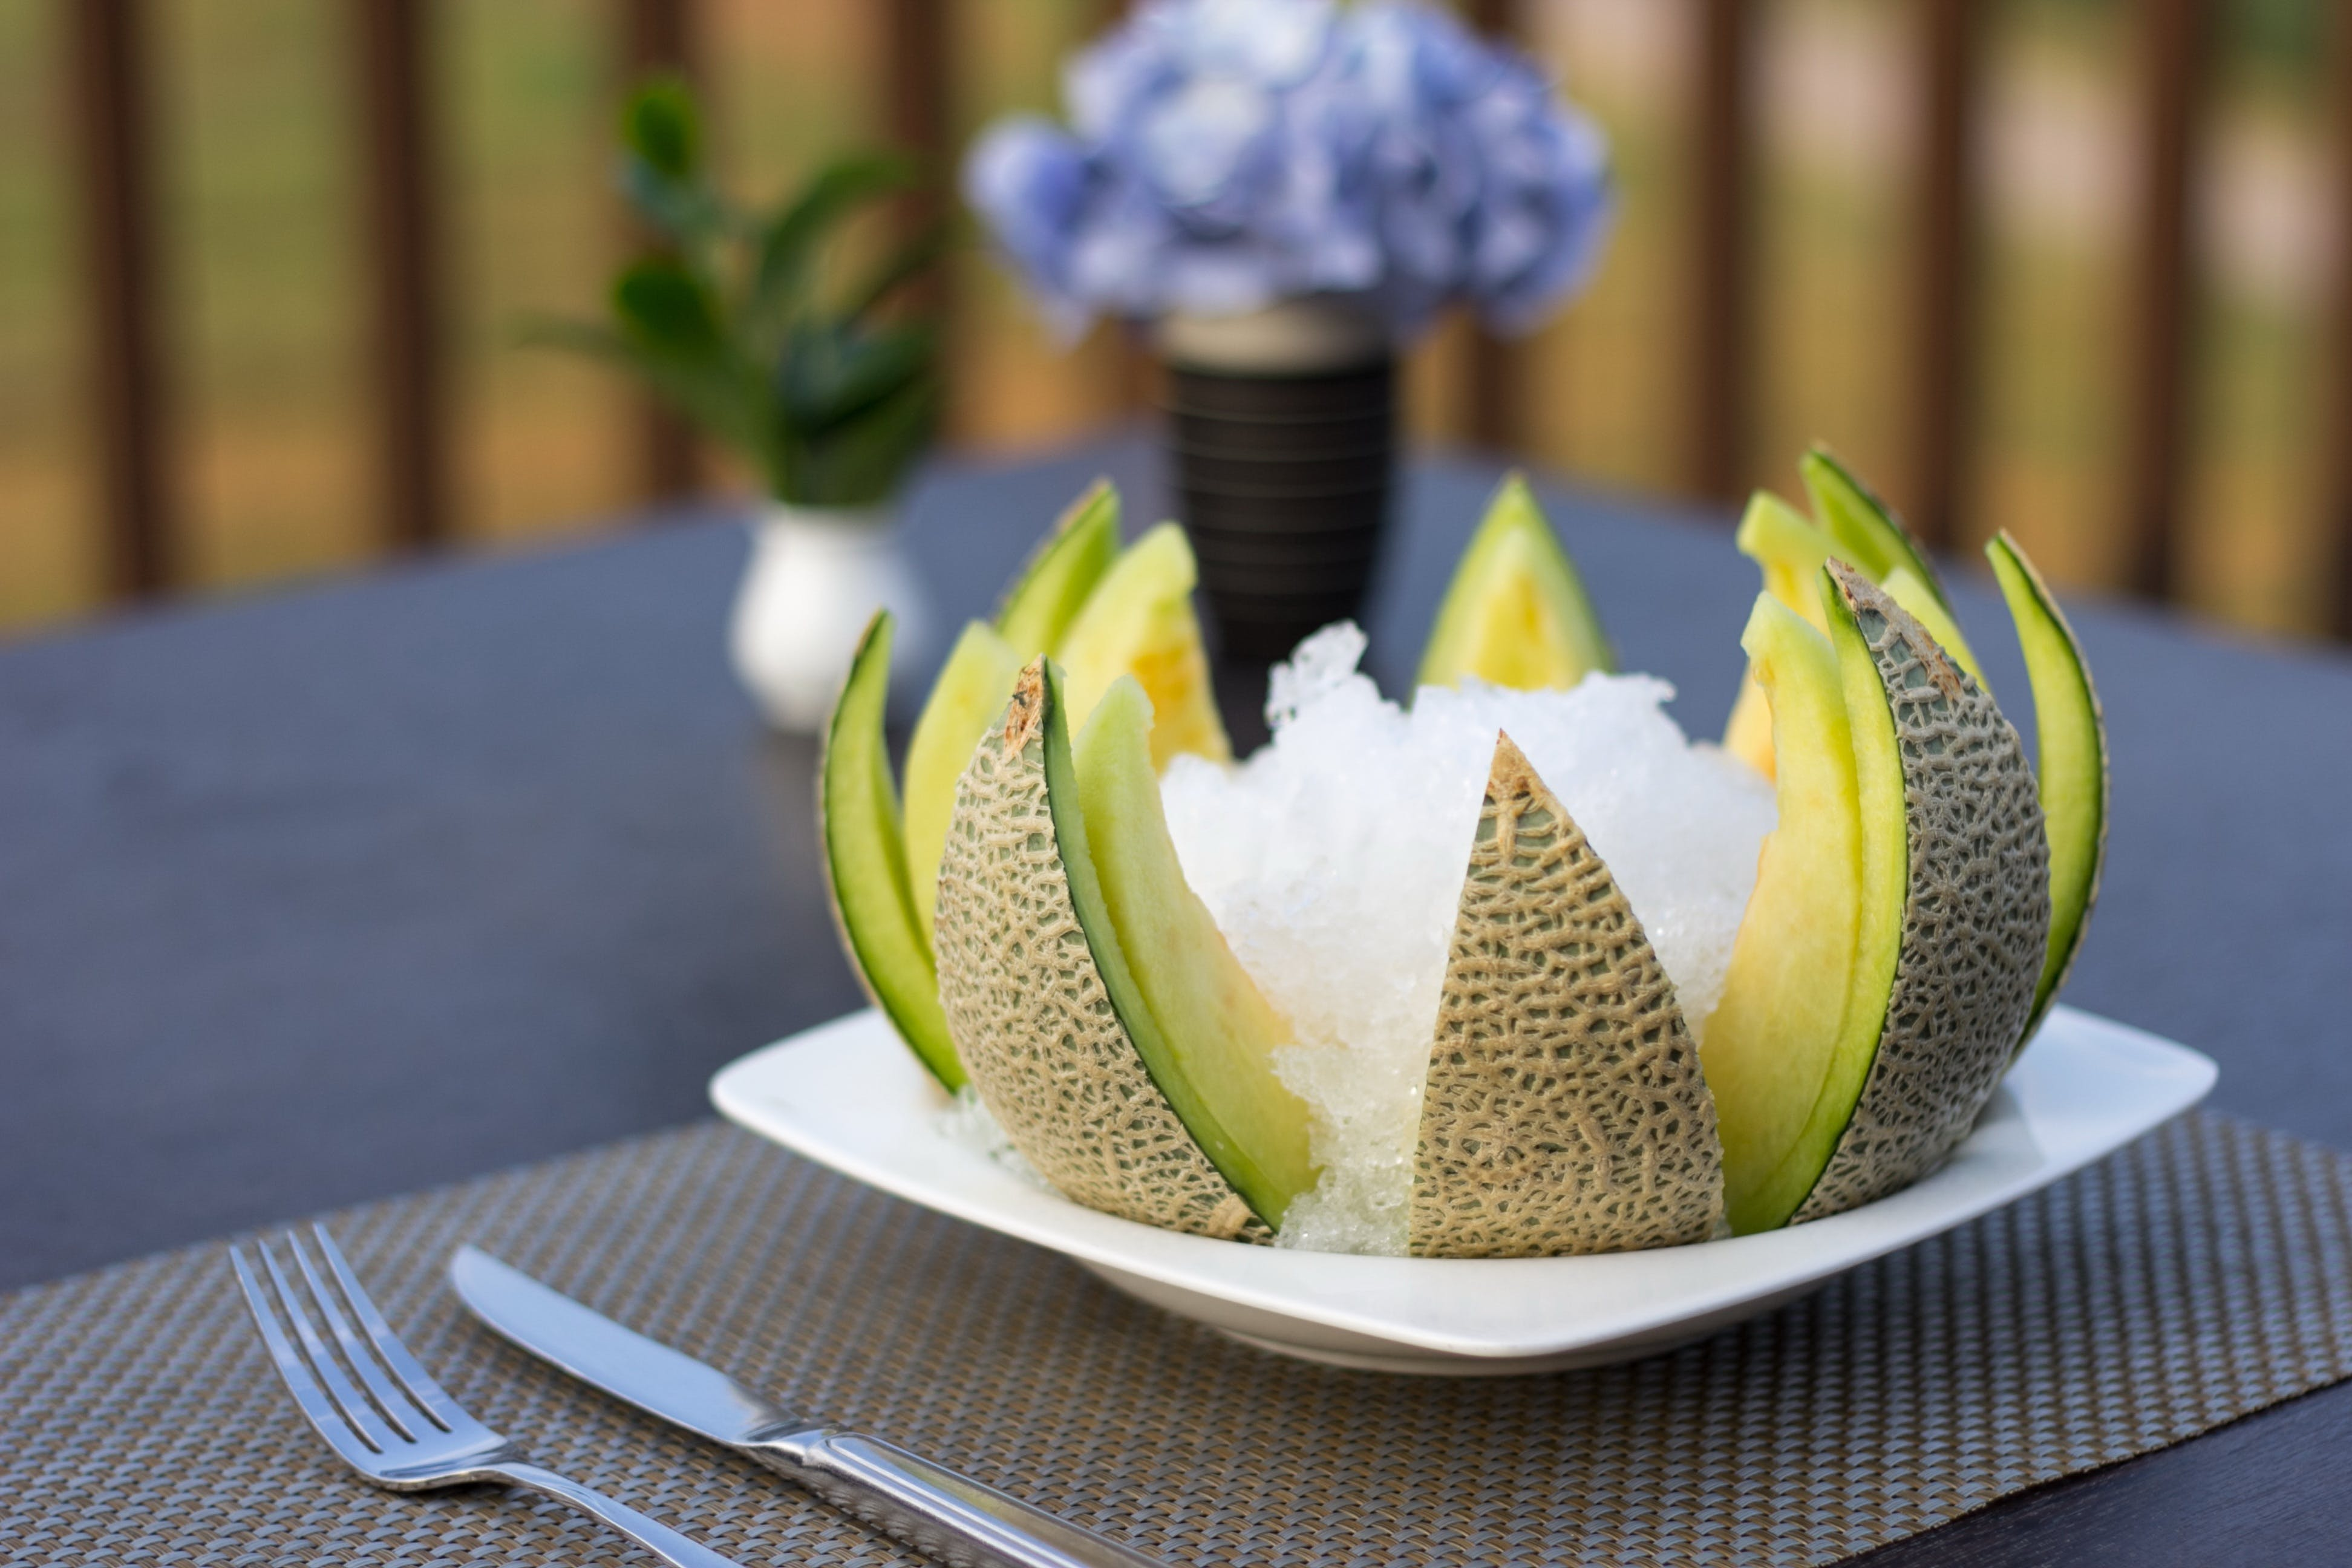 Sliced Kiwi Served in Plate